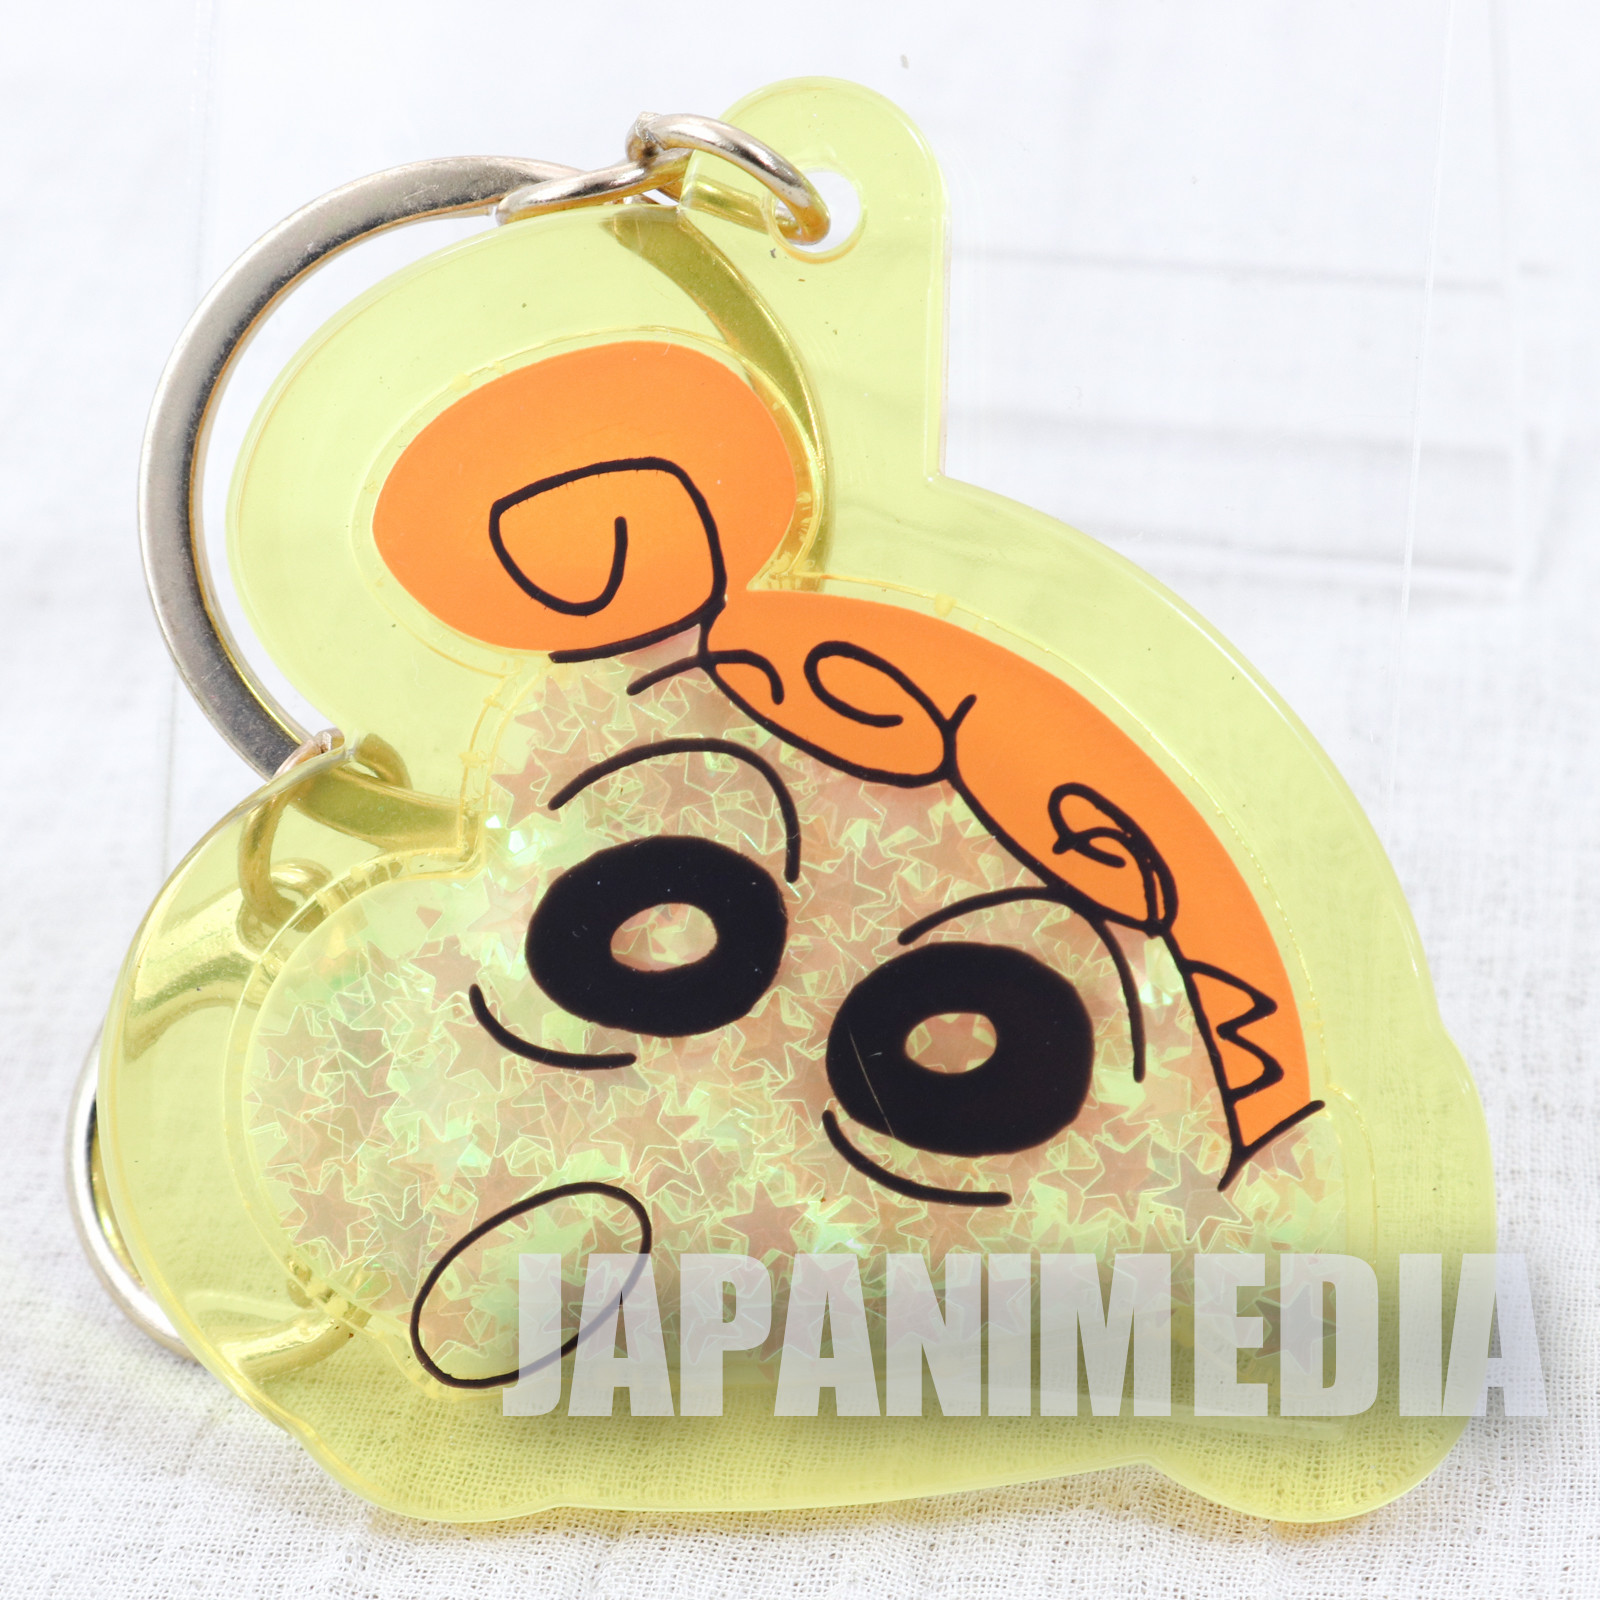 Crayon Shin-chan Himawari Nohara Mascot Star-shaped Sequins Keychain JAPAN ANIME